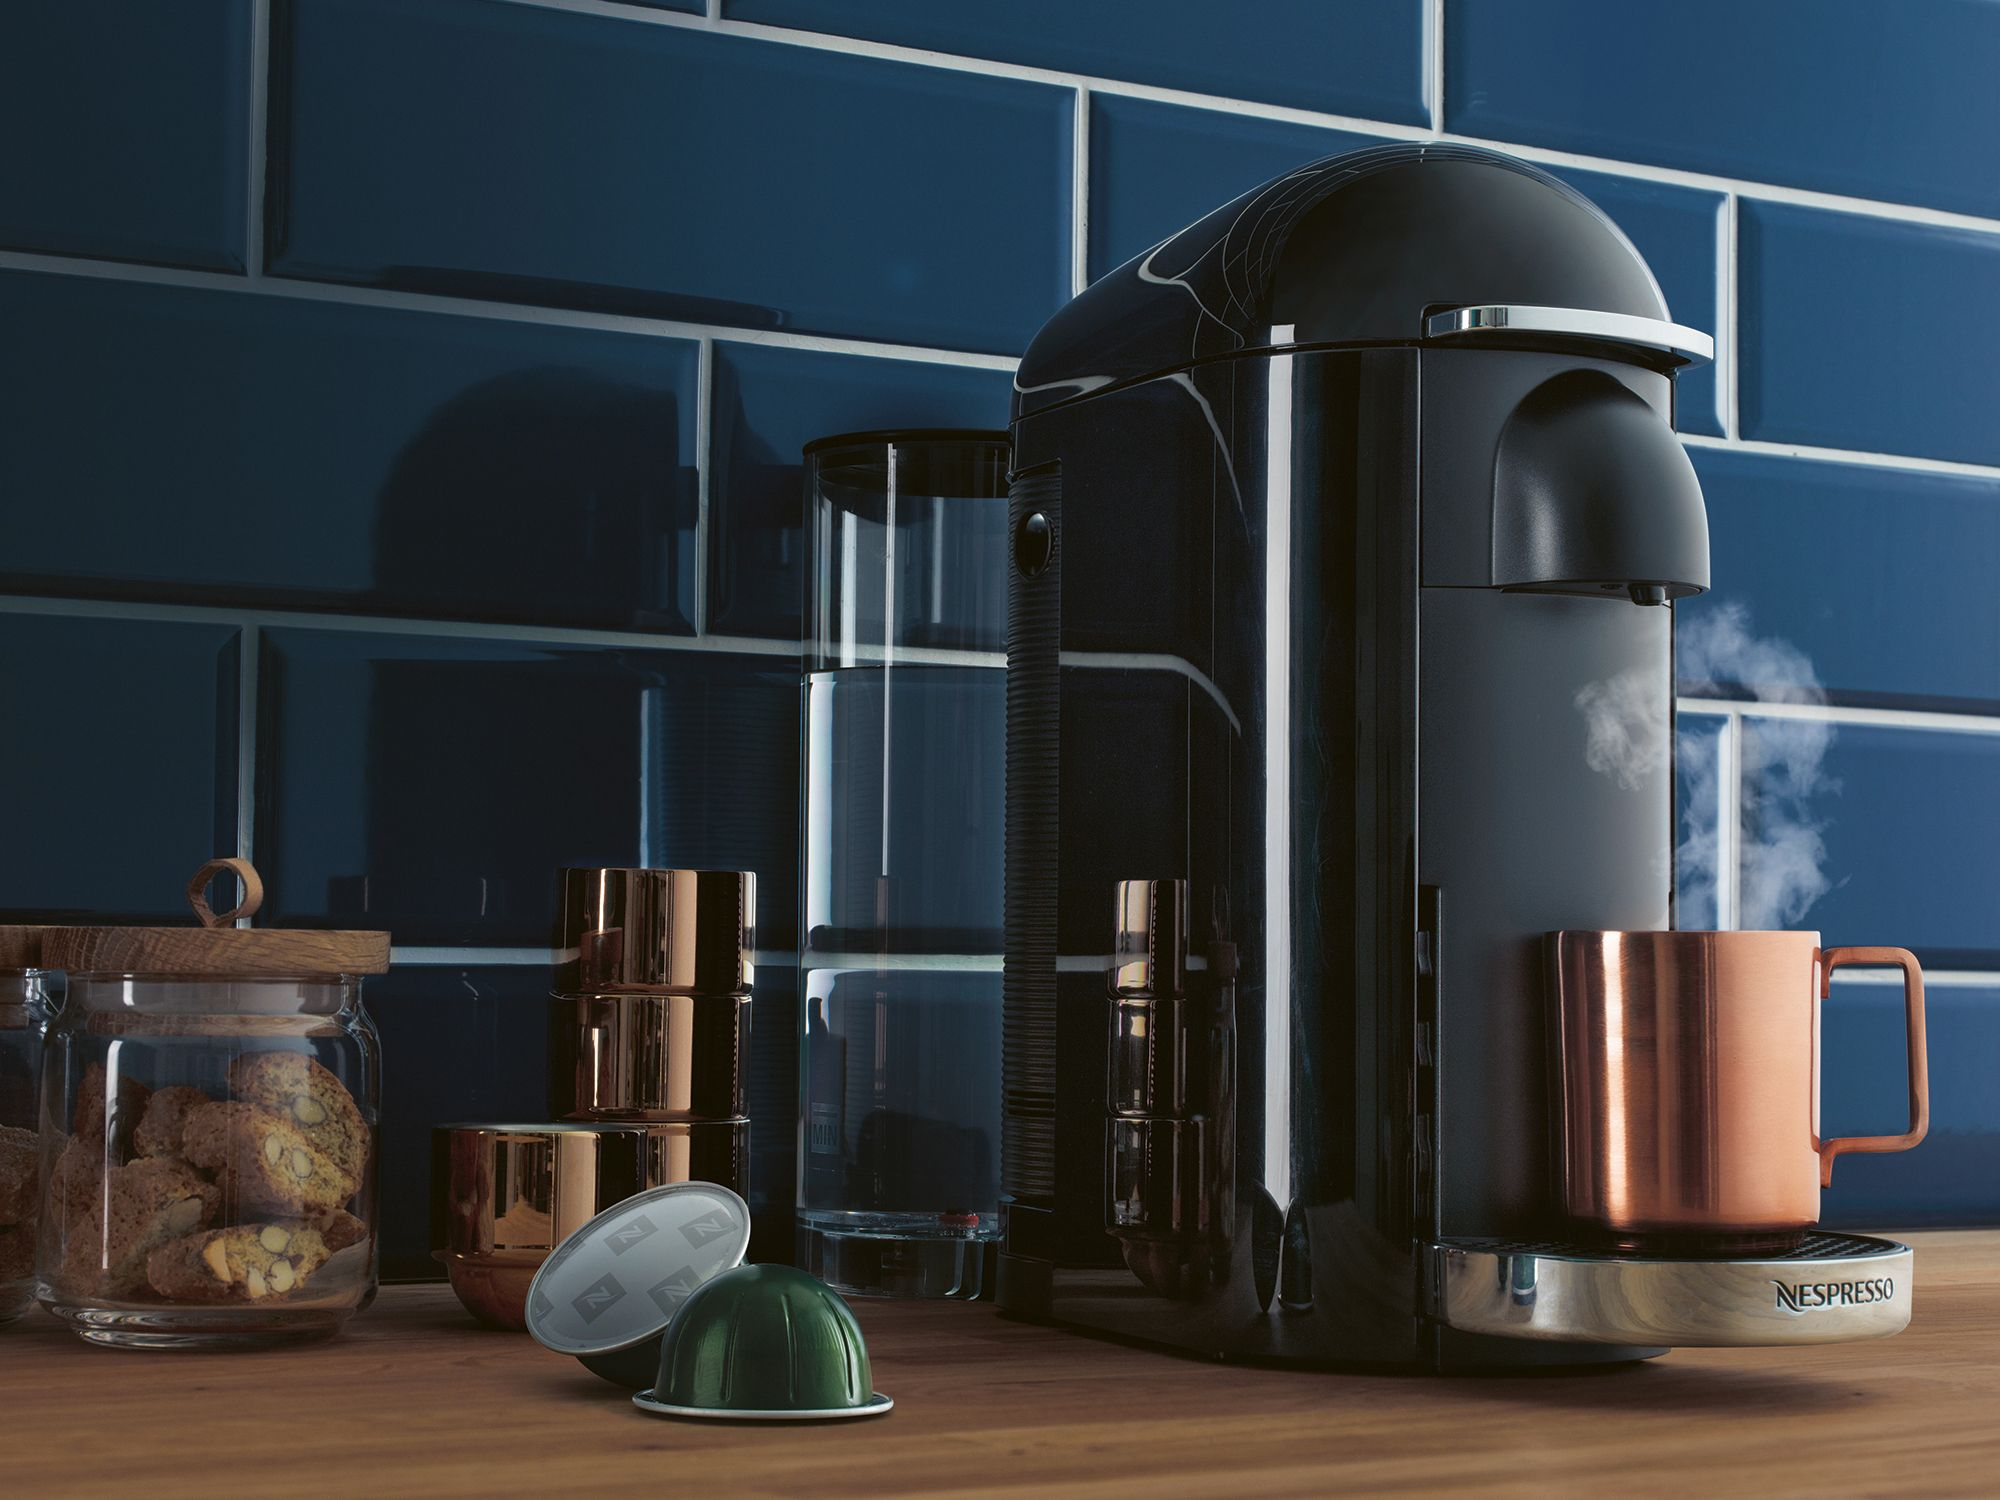 Coffee machine in kitchen